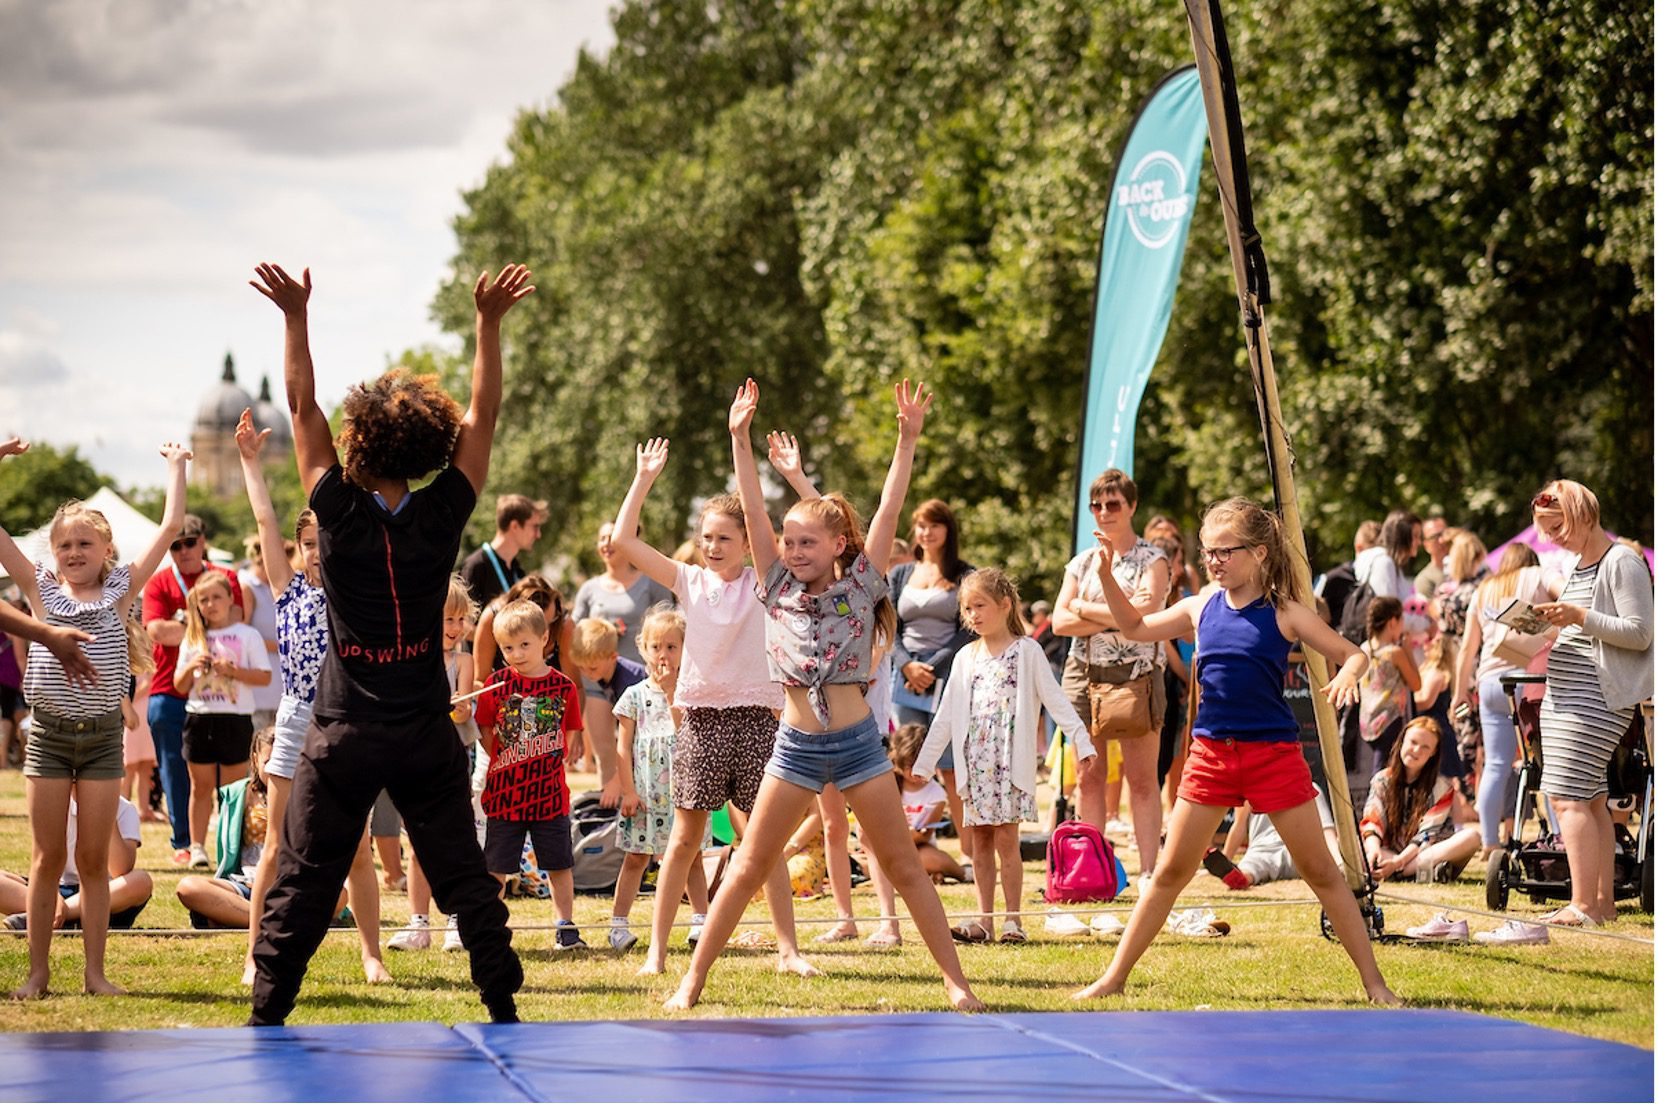 A group of children copy a dance routine from a workshop leader at a festival